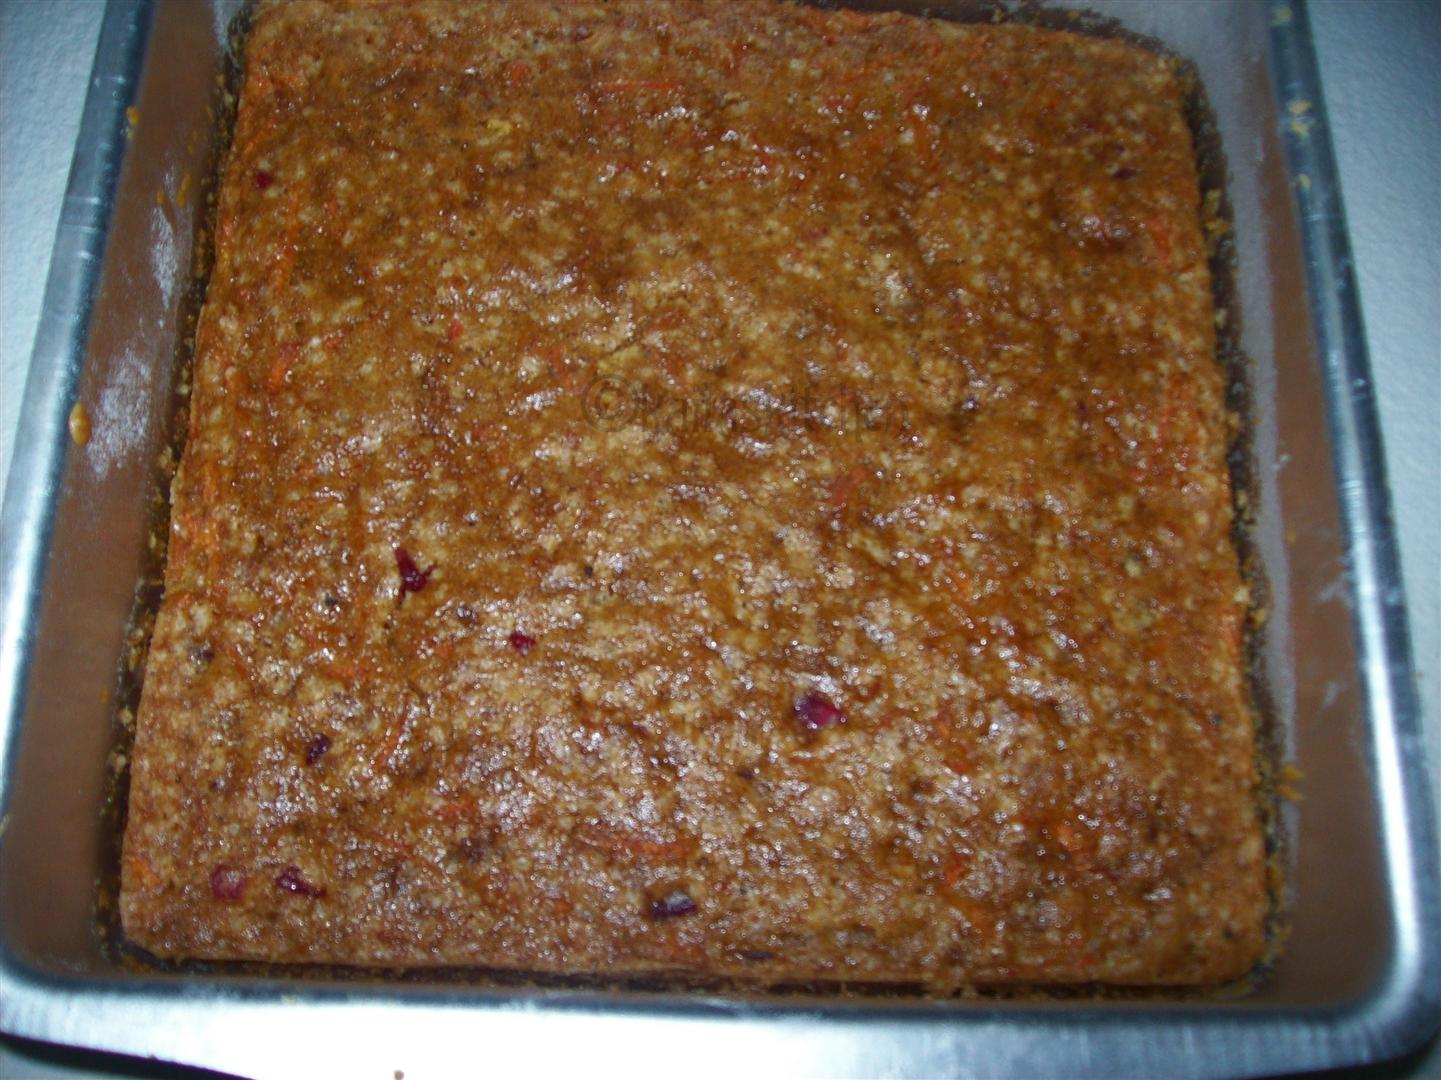 Bran Cake Recipe Low Fat: Experiments In Kailas Kitchen: Eggless Carrot Cake